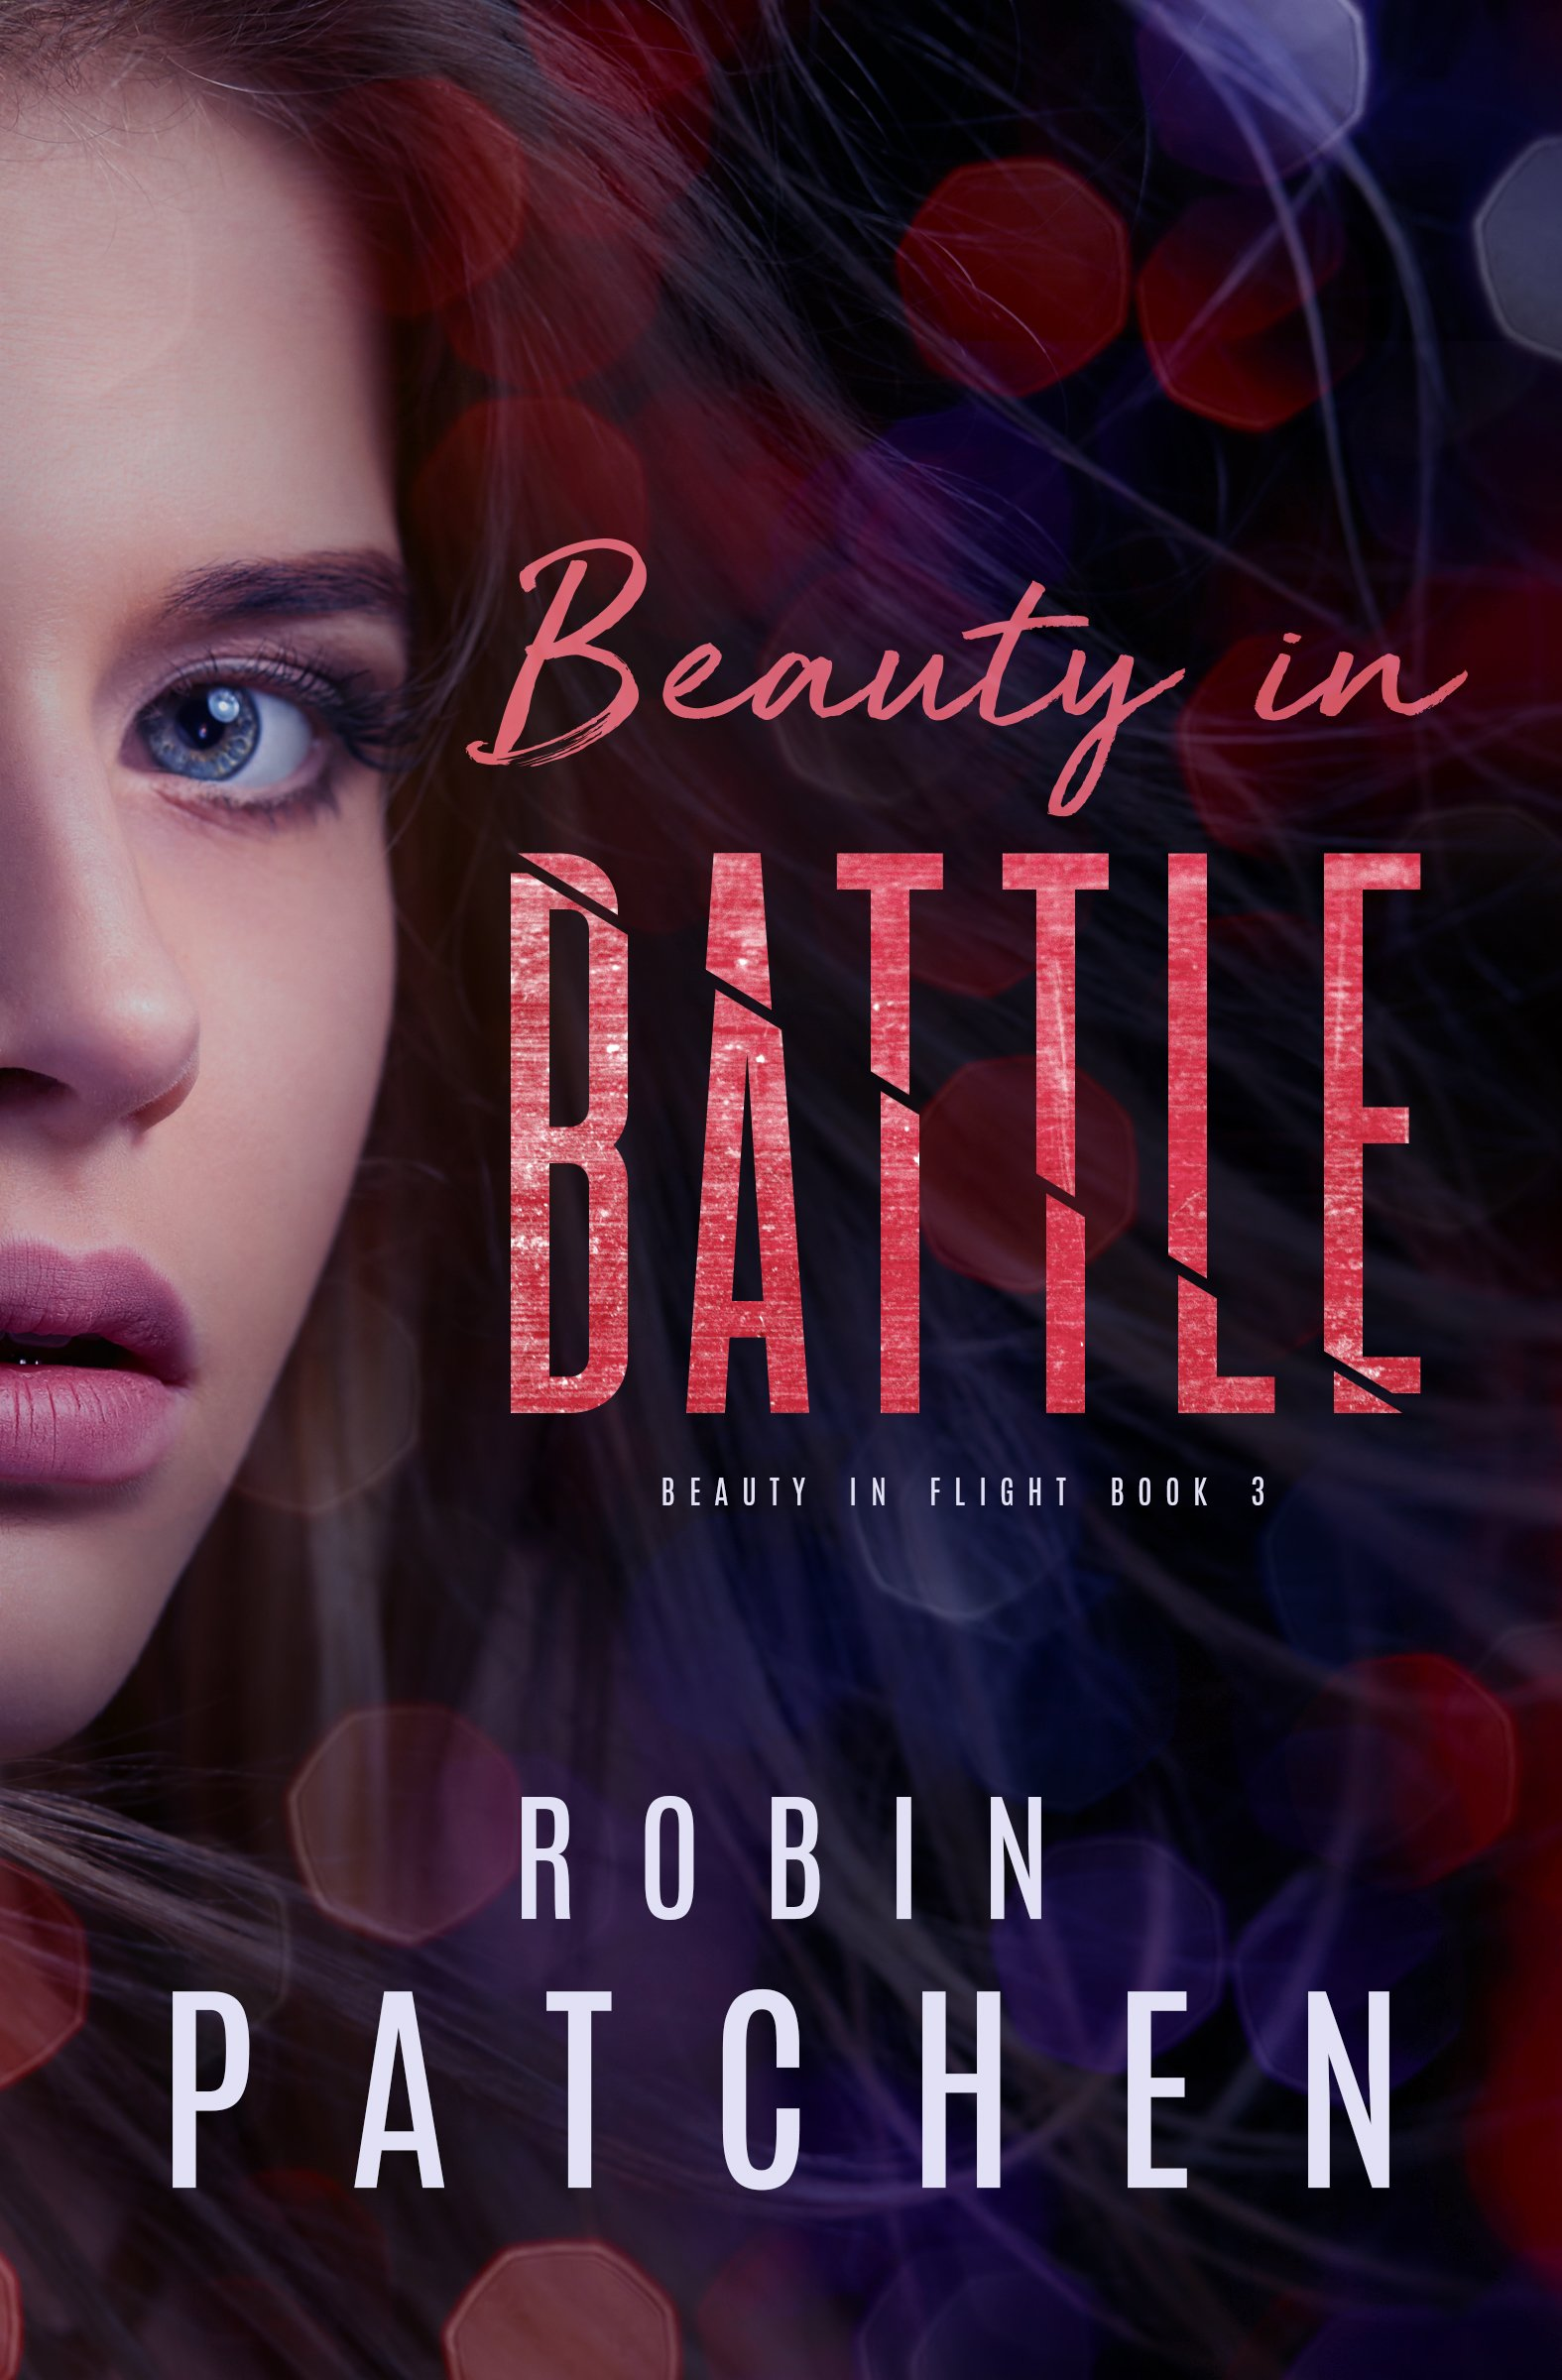 BeautyInBattle (book 3)